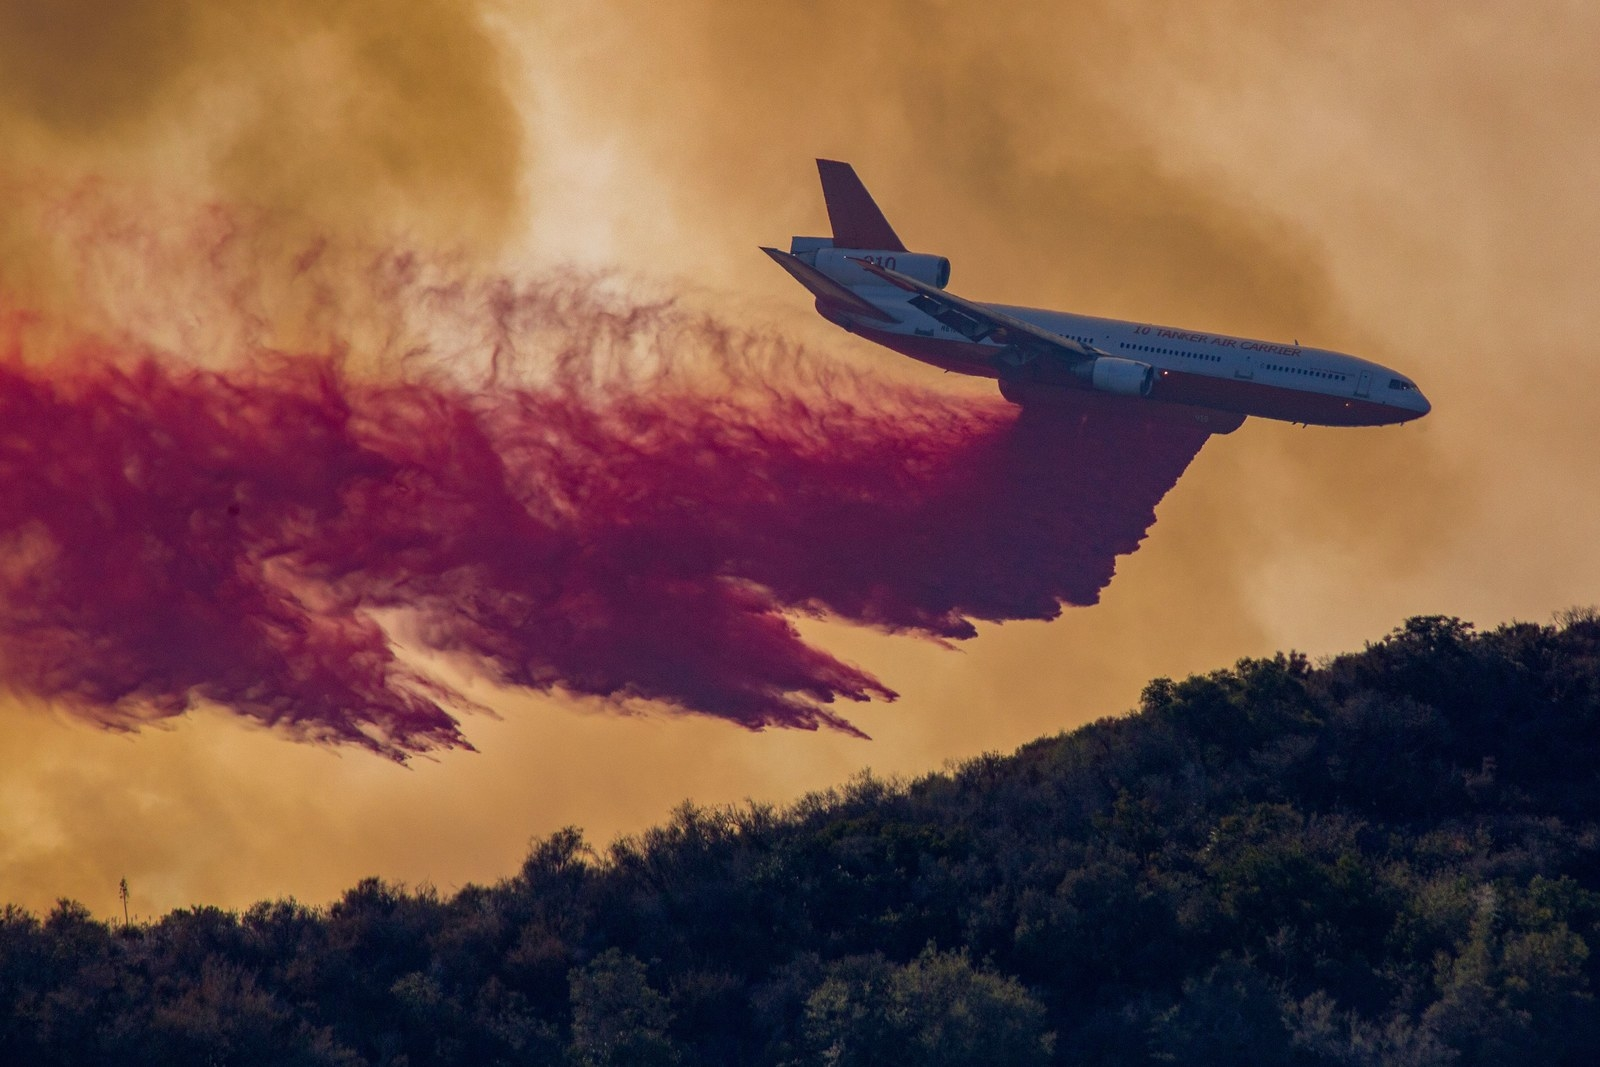 An airplane drops fire retardant at the Holy Fire near Lake Elsinore, California, on Aug. 7, 2018.